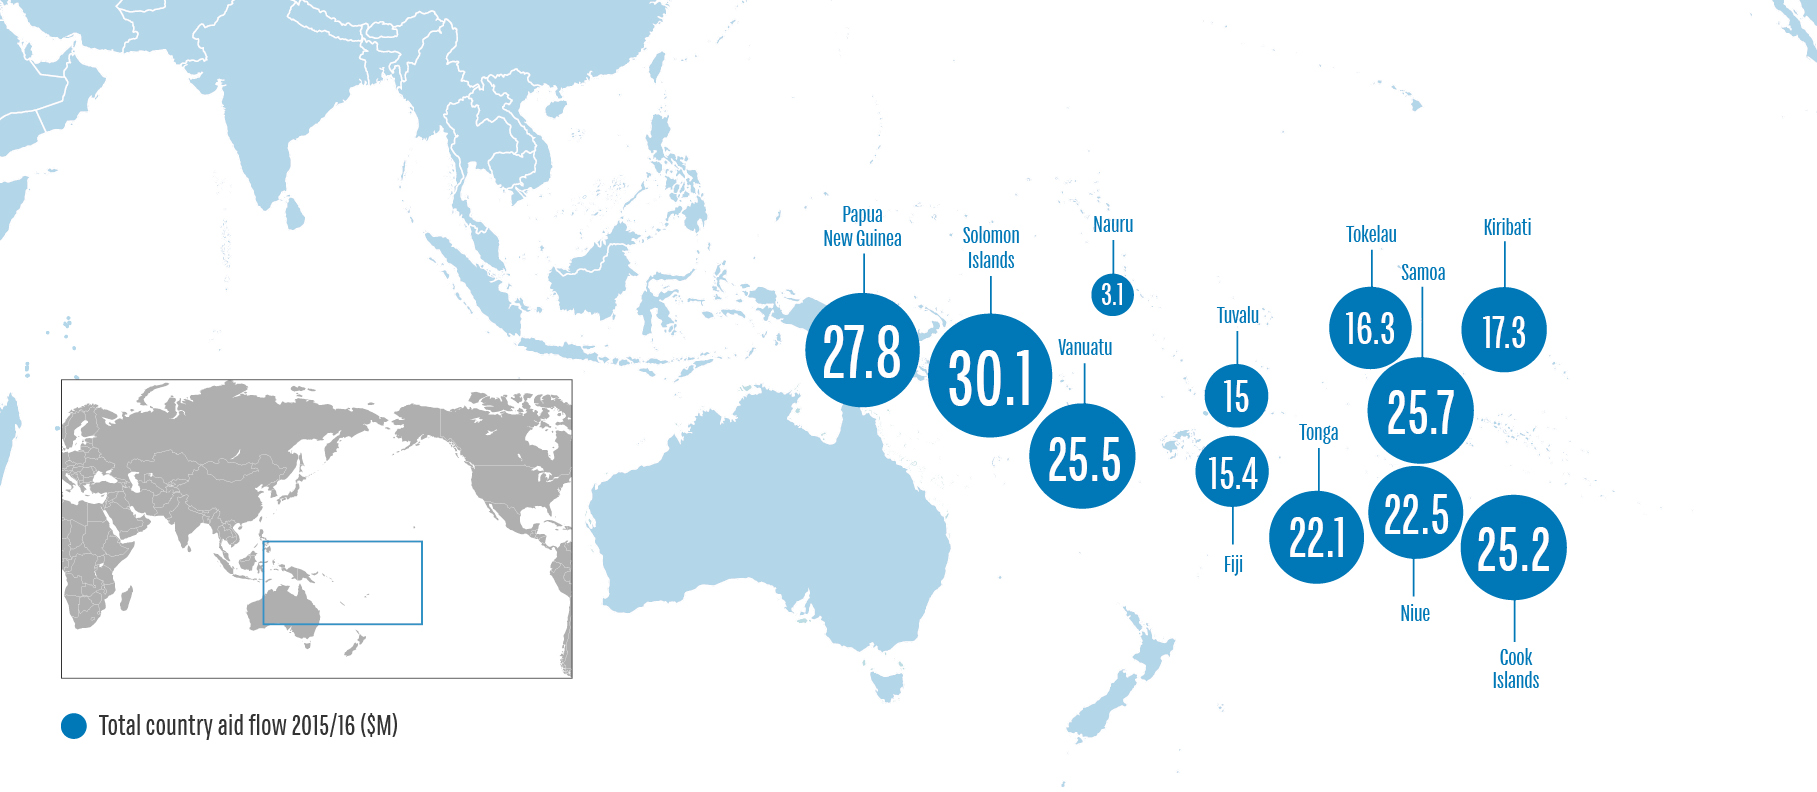 NZ Aid and Development Funding in the Pacific 2015-16